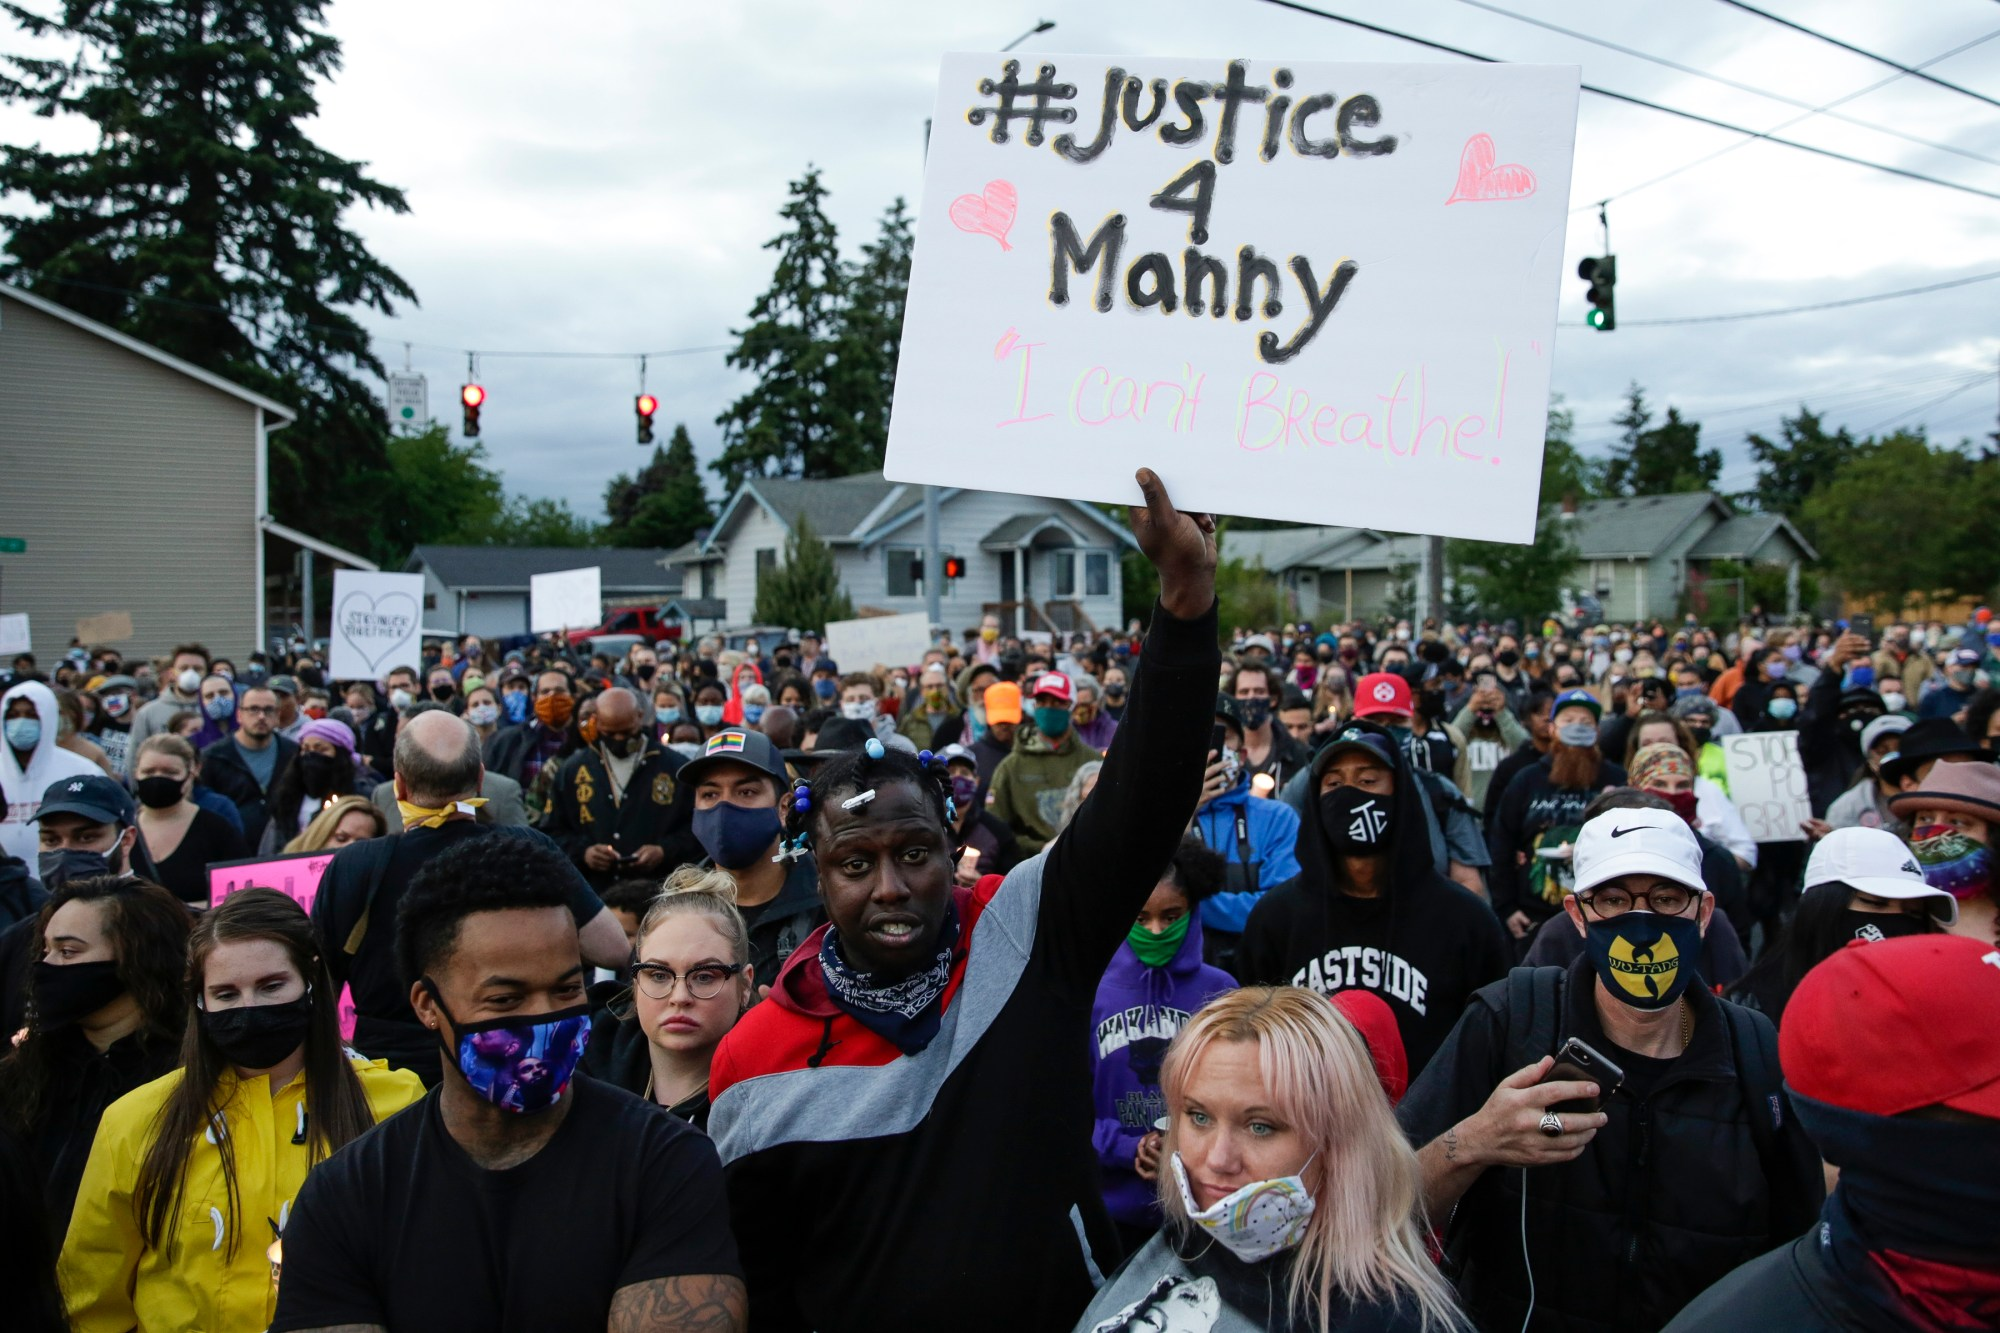 Family, friends and community members attend a vigil at the intersection where Manuel Ellis, a 33-year-old black man, died in Tacoma police custody on March 3 after his death was ruled a homicide on June 3, 2020. (Jason Redmond / AFP / Getty Images)